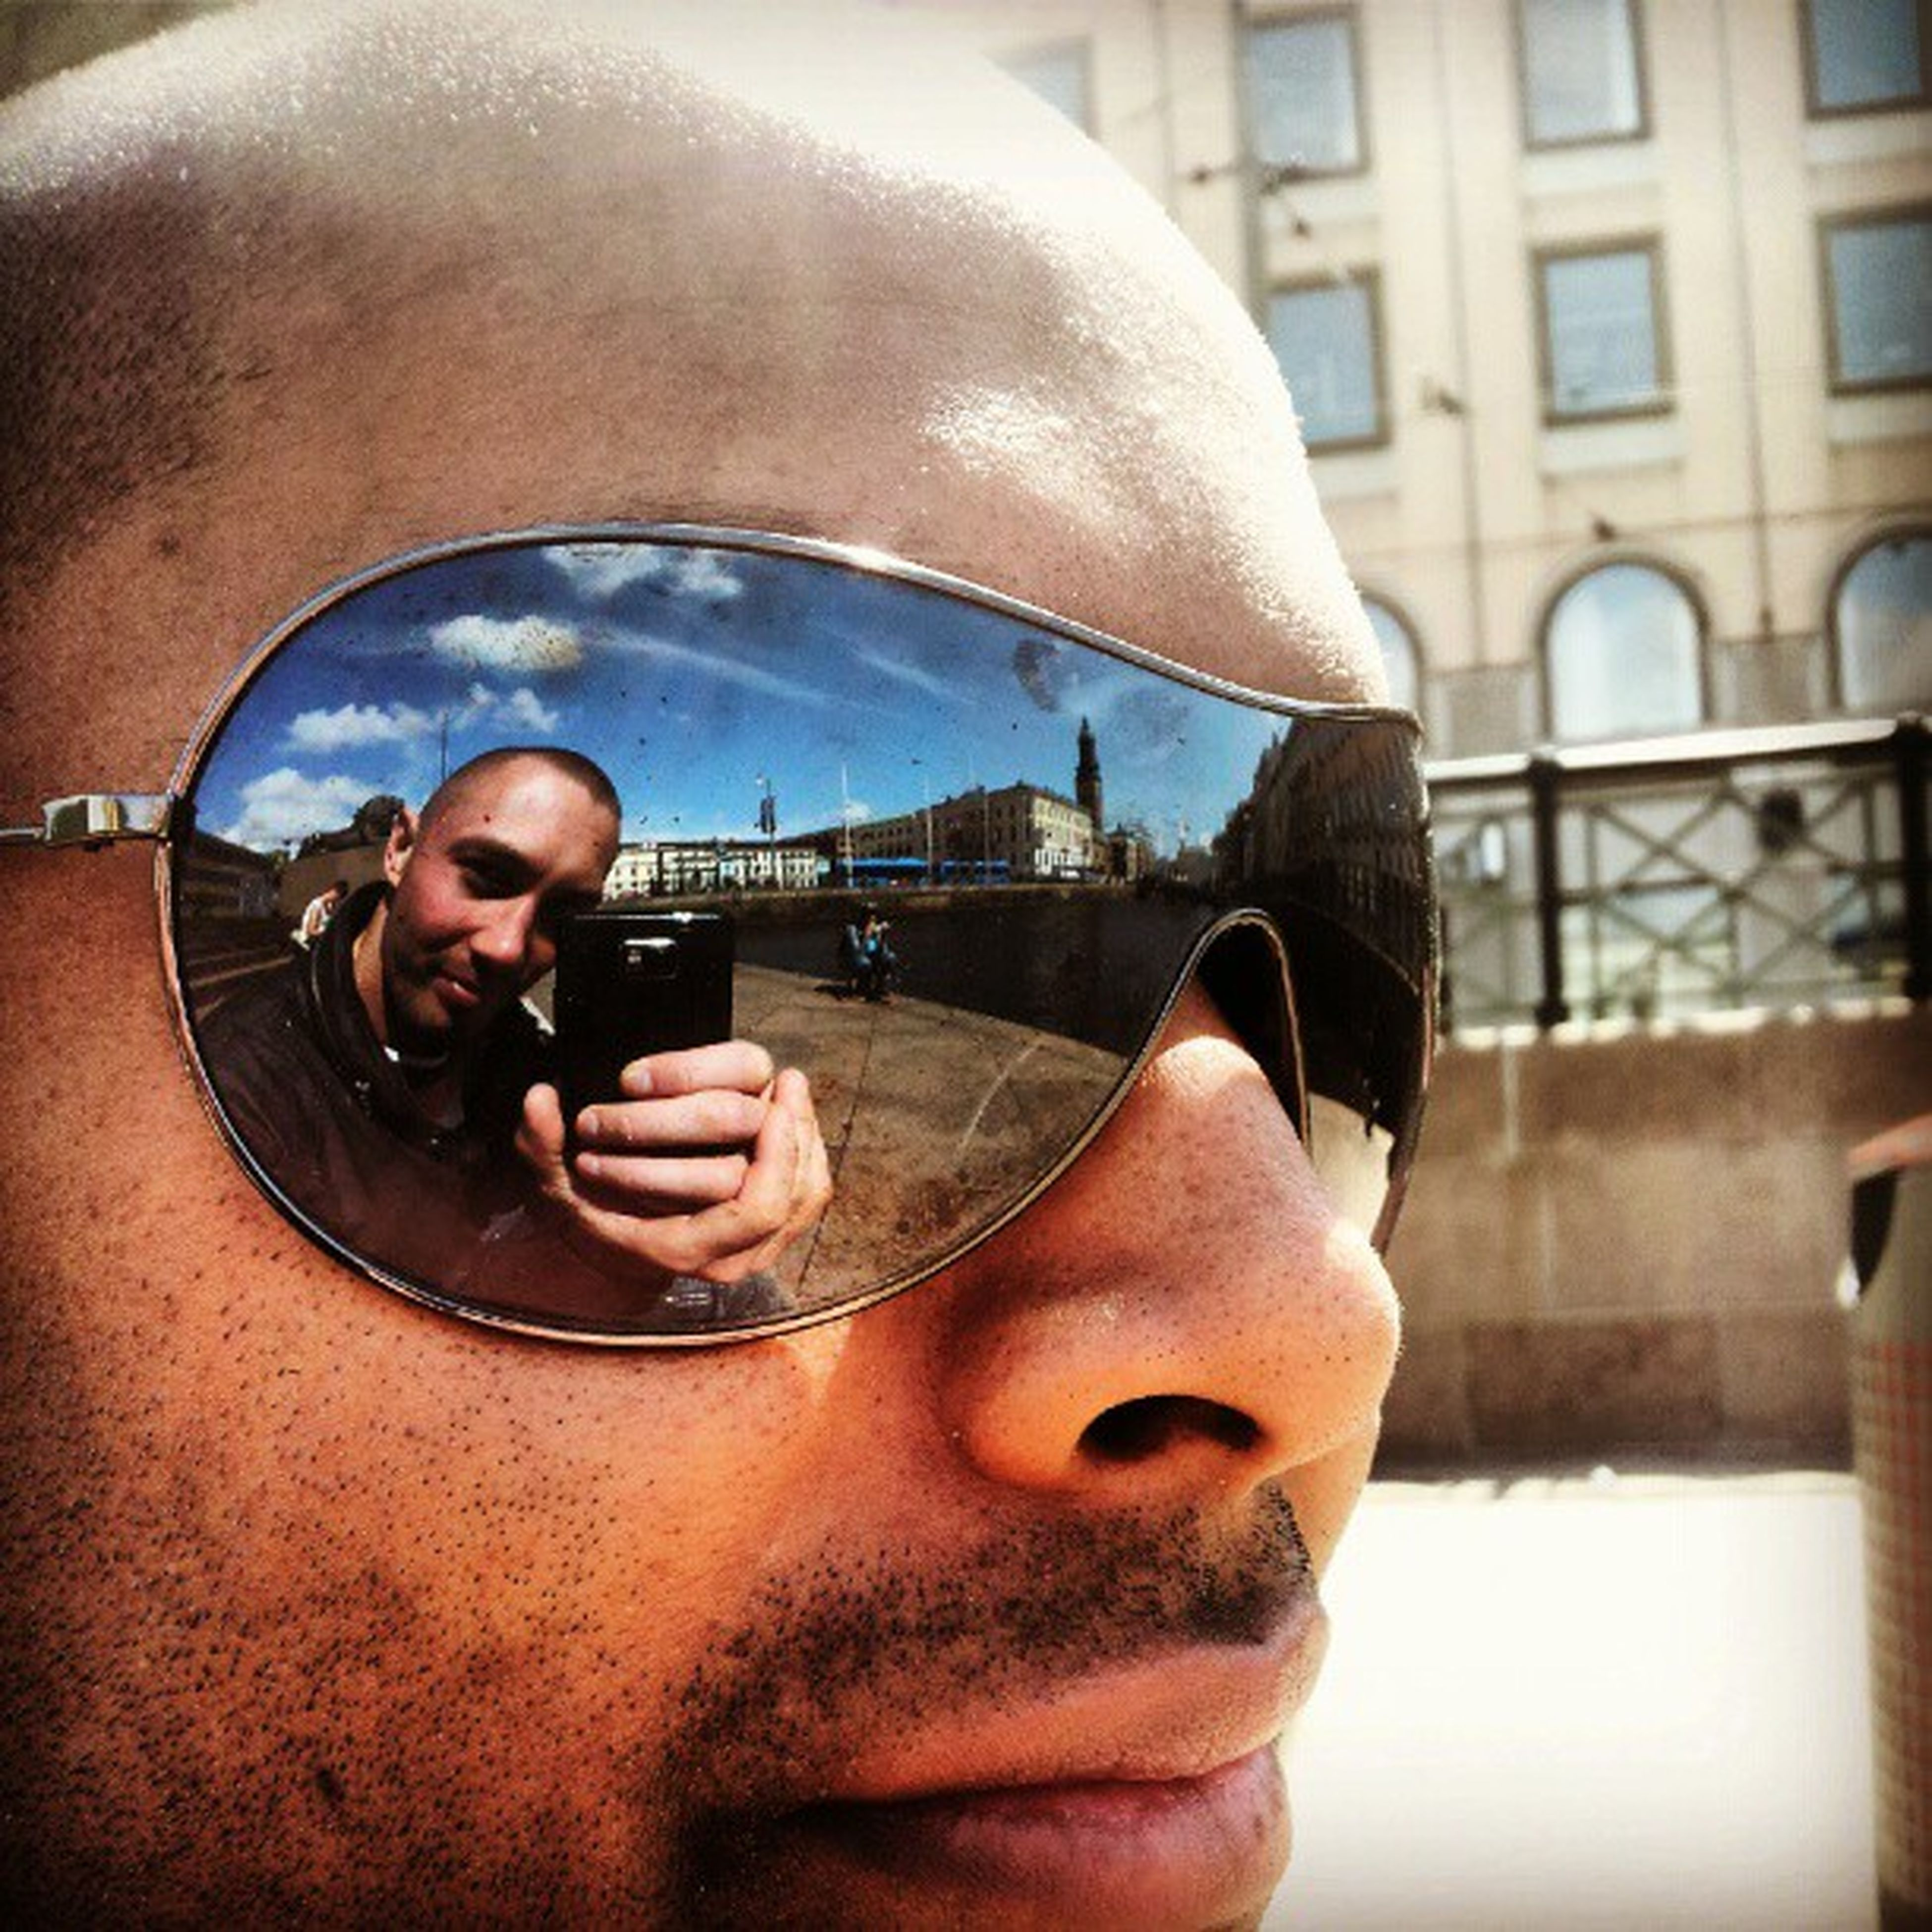 lifestyles, person, young adult, sunglasses, leisure activity, young men, looking at camera, portrait, front view, headshot, photography themes, holding, photographing, reflection, smiling, smart phone, mid adult men, architecture